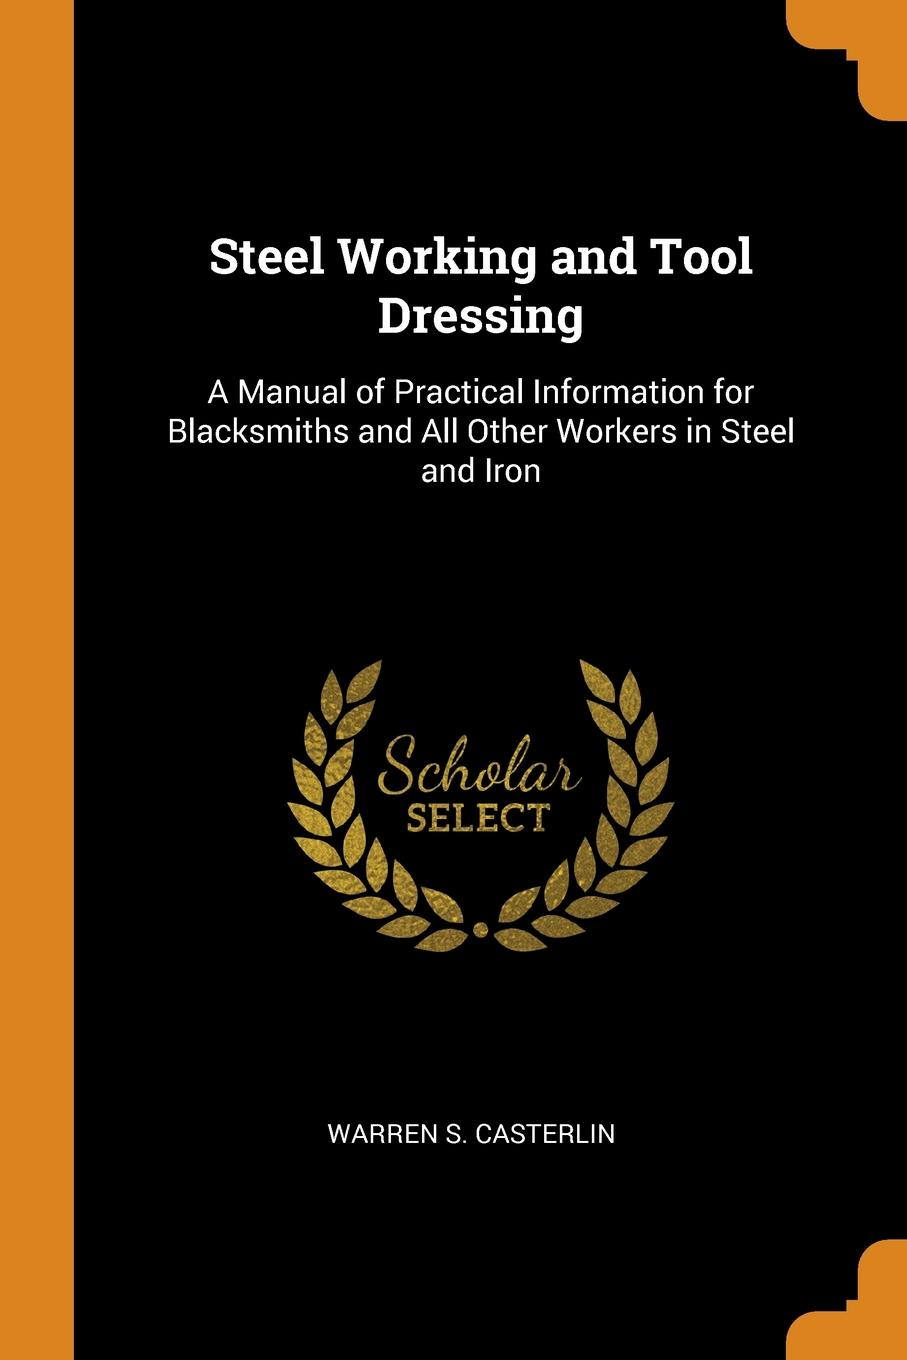 Warren S. Casterlin. Steel Working and Tool Dressing. A Manual of Practical Information for Blacksmiths and All Other Workers in Steel and Iron